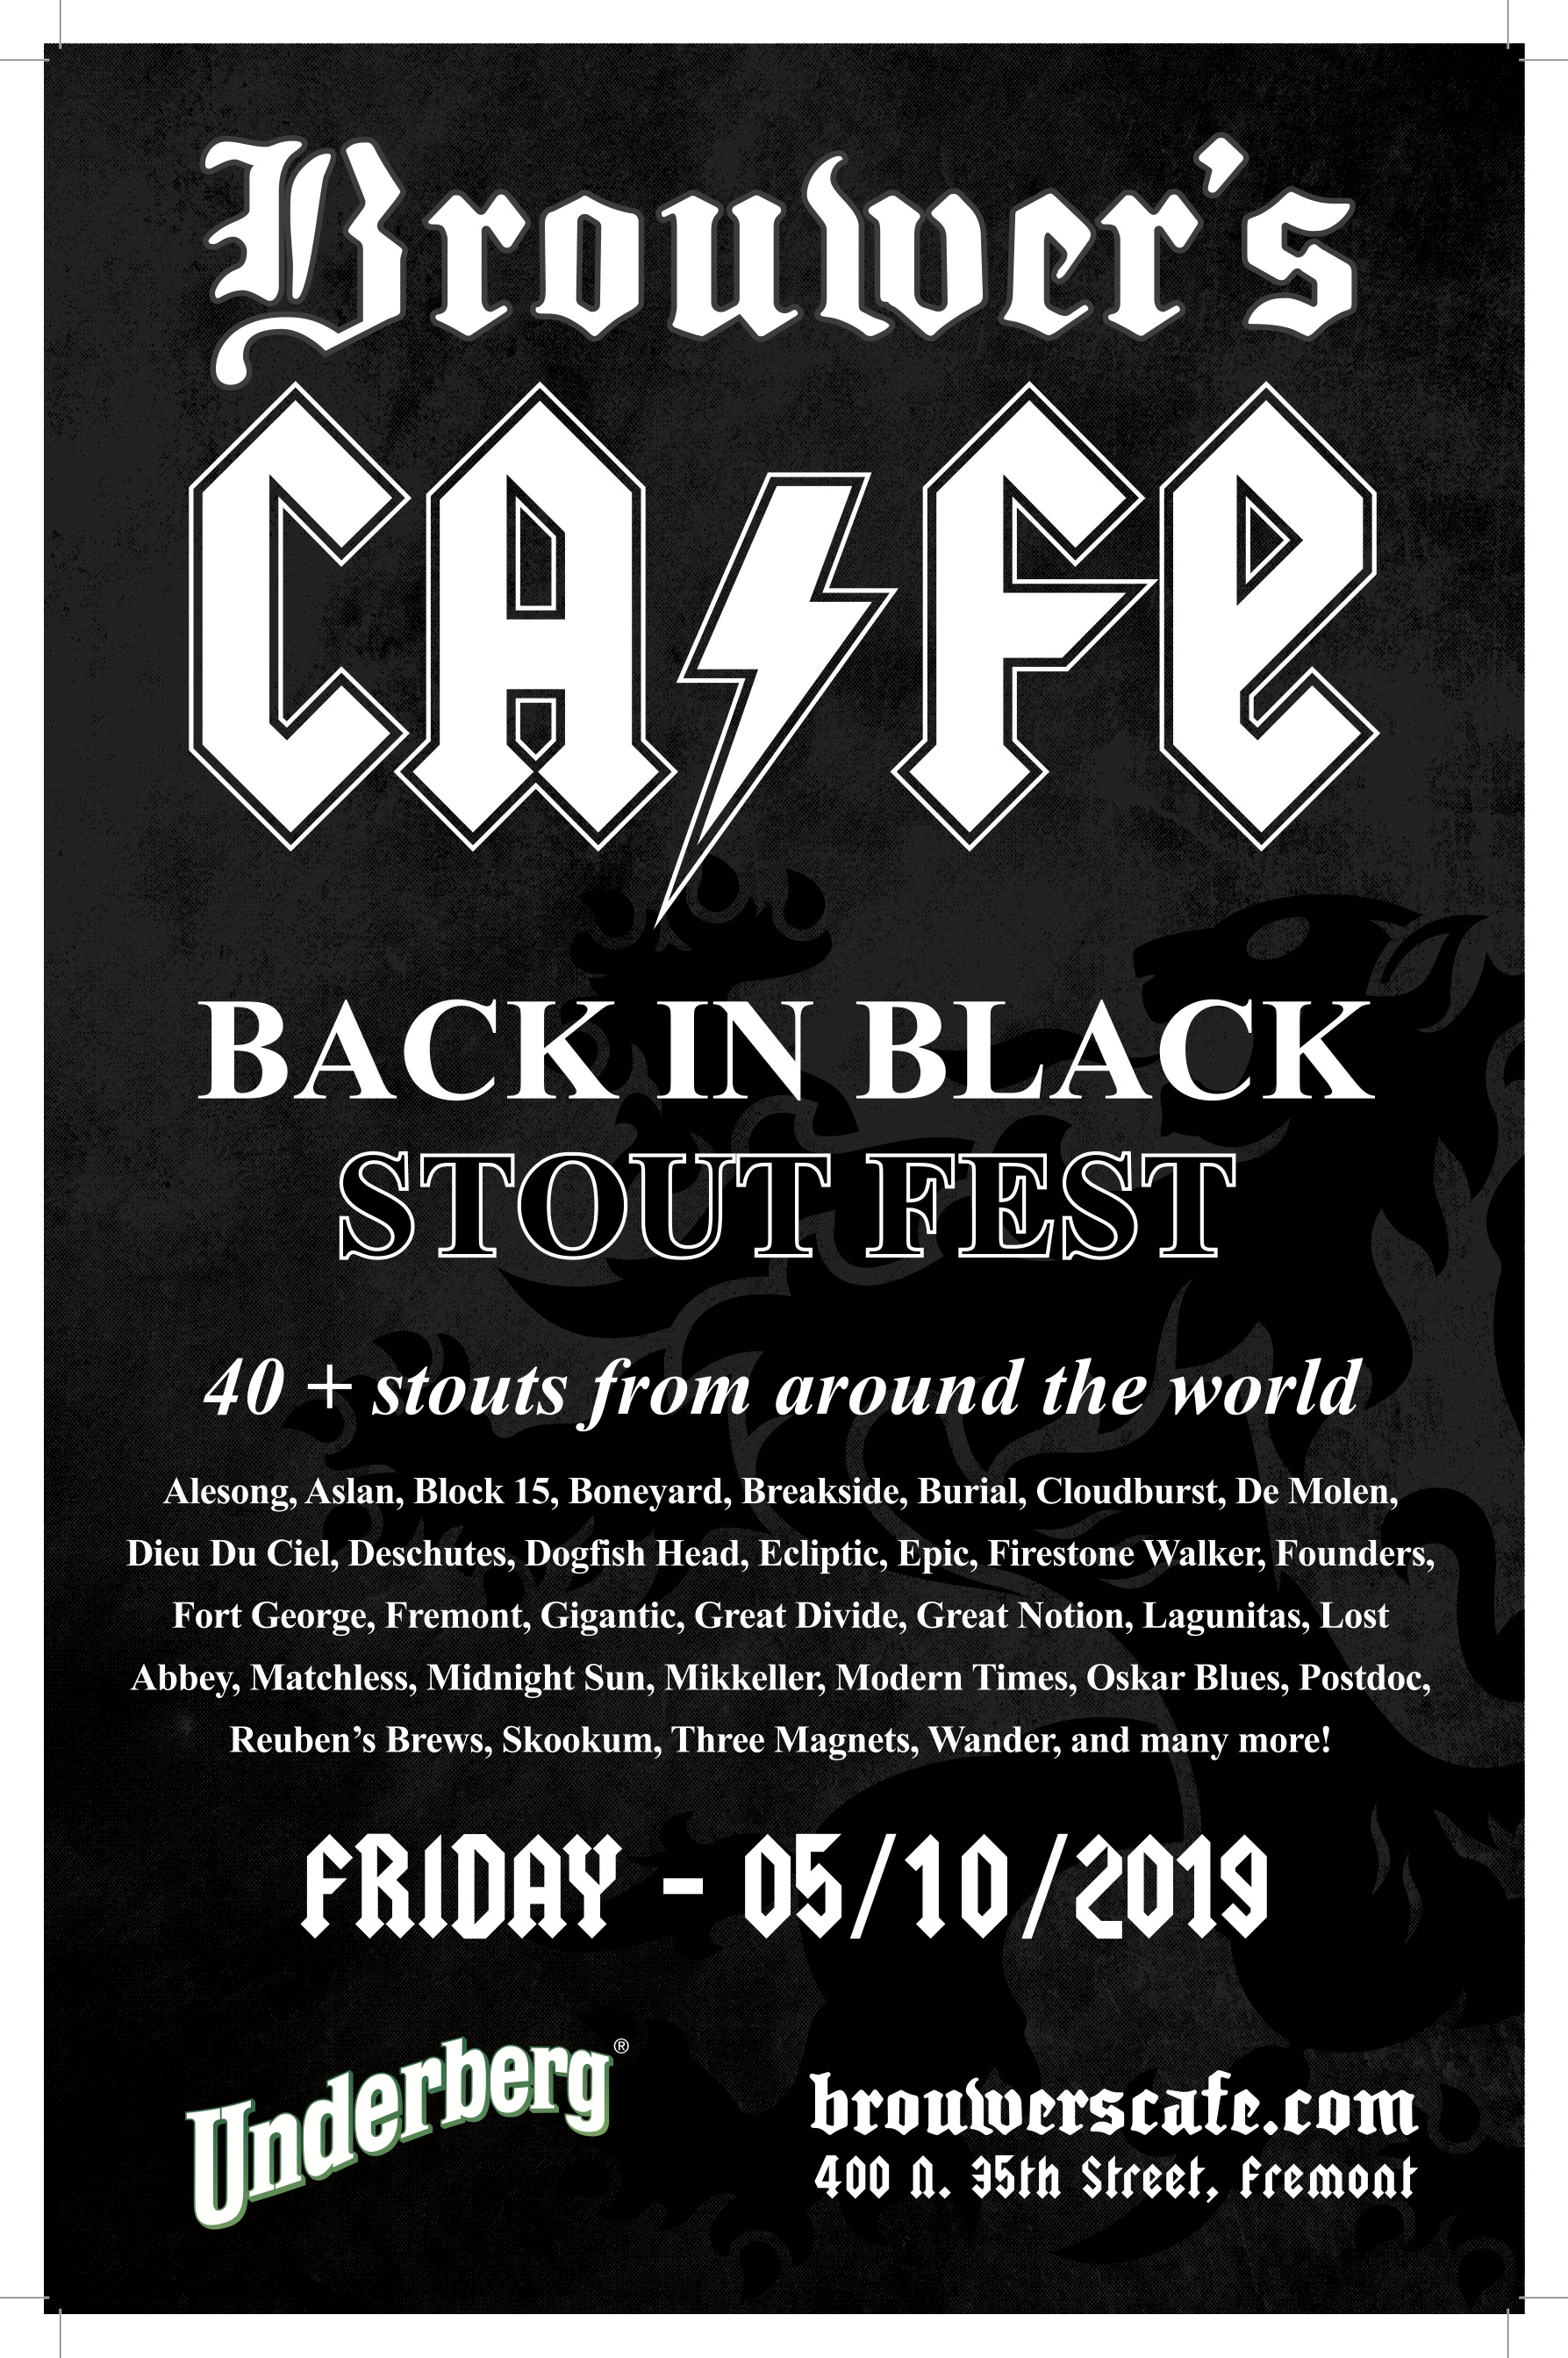 Friday, May 10-12, Back in Black Stout Fest